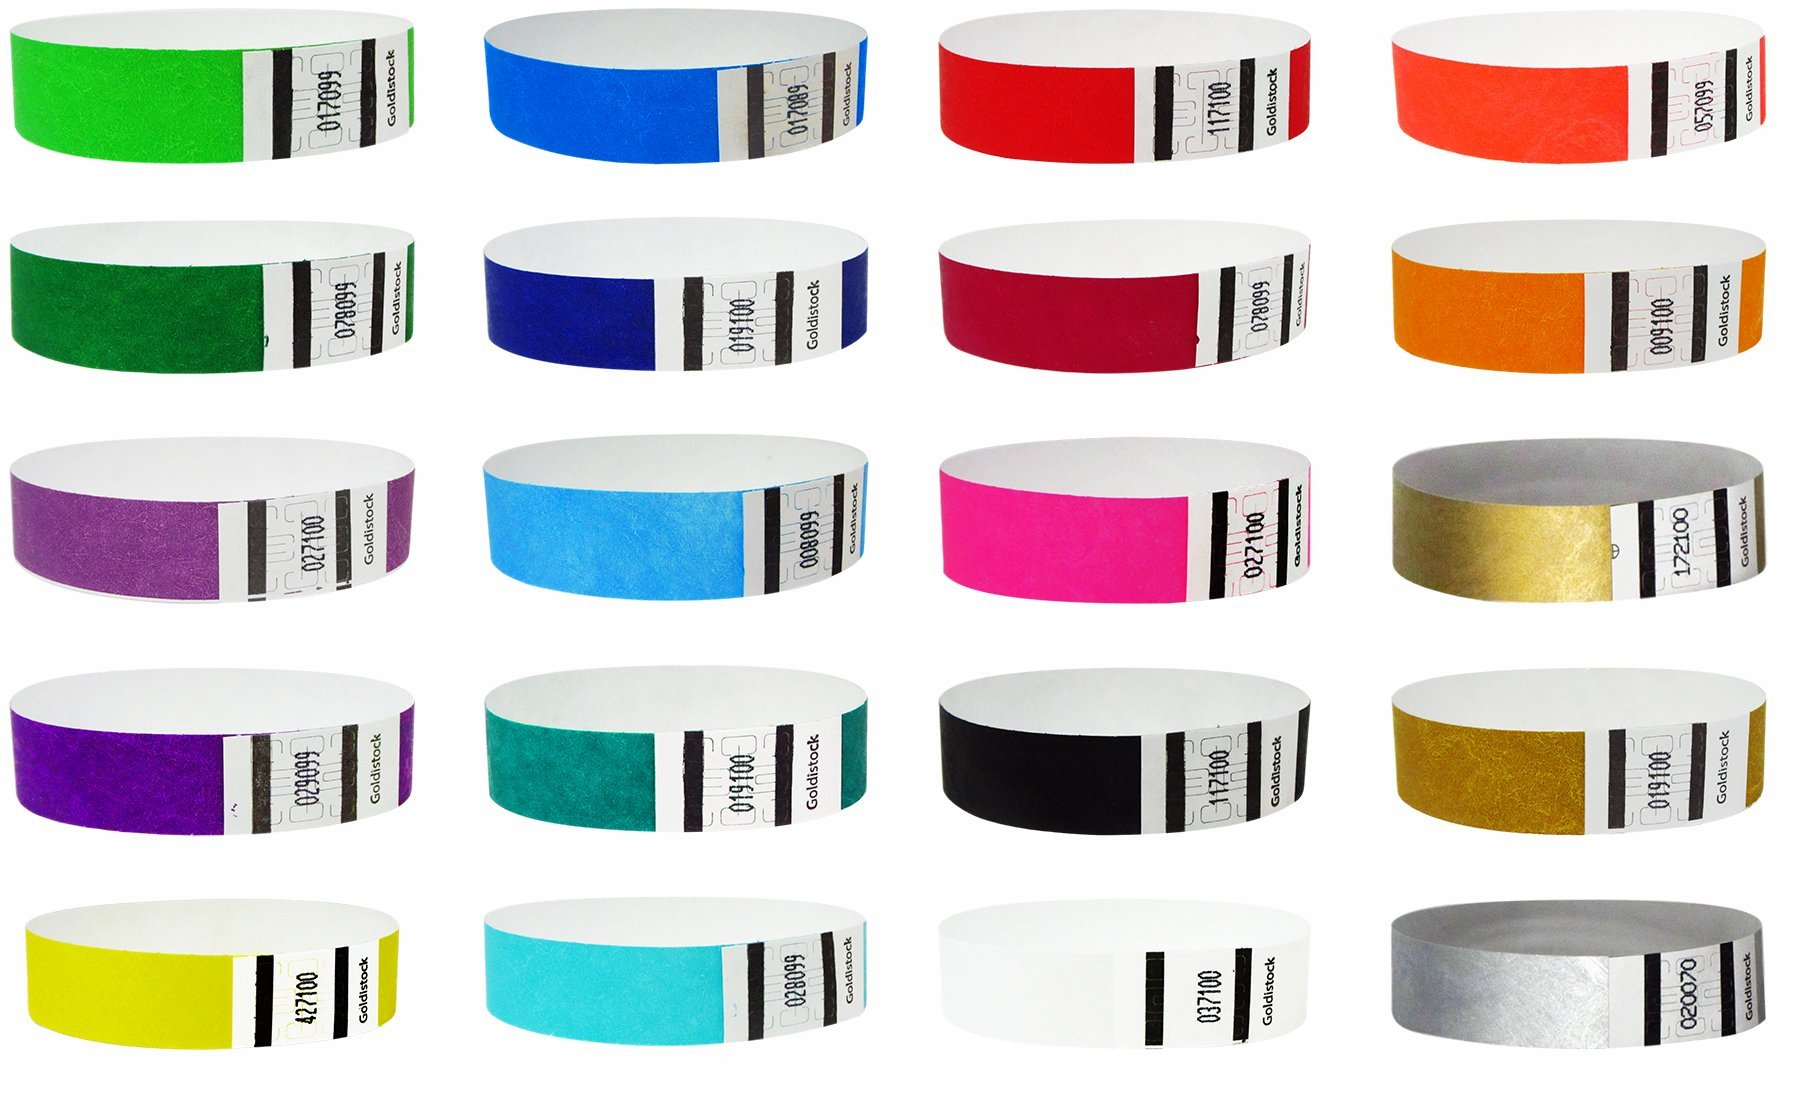 "Goldistock 3/4"" Tyvek Wristbands Top Twenty Variety Pack 20 Colors 200 Ct.- Green (2 Shades), Blue(3 Shades), Red(2), Orange(2), Purple(2), Gold(2), Yellow, Pink, Silver, Aqua, White, Black, Teal"